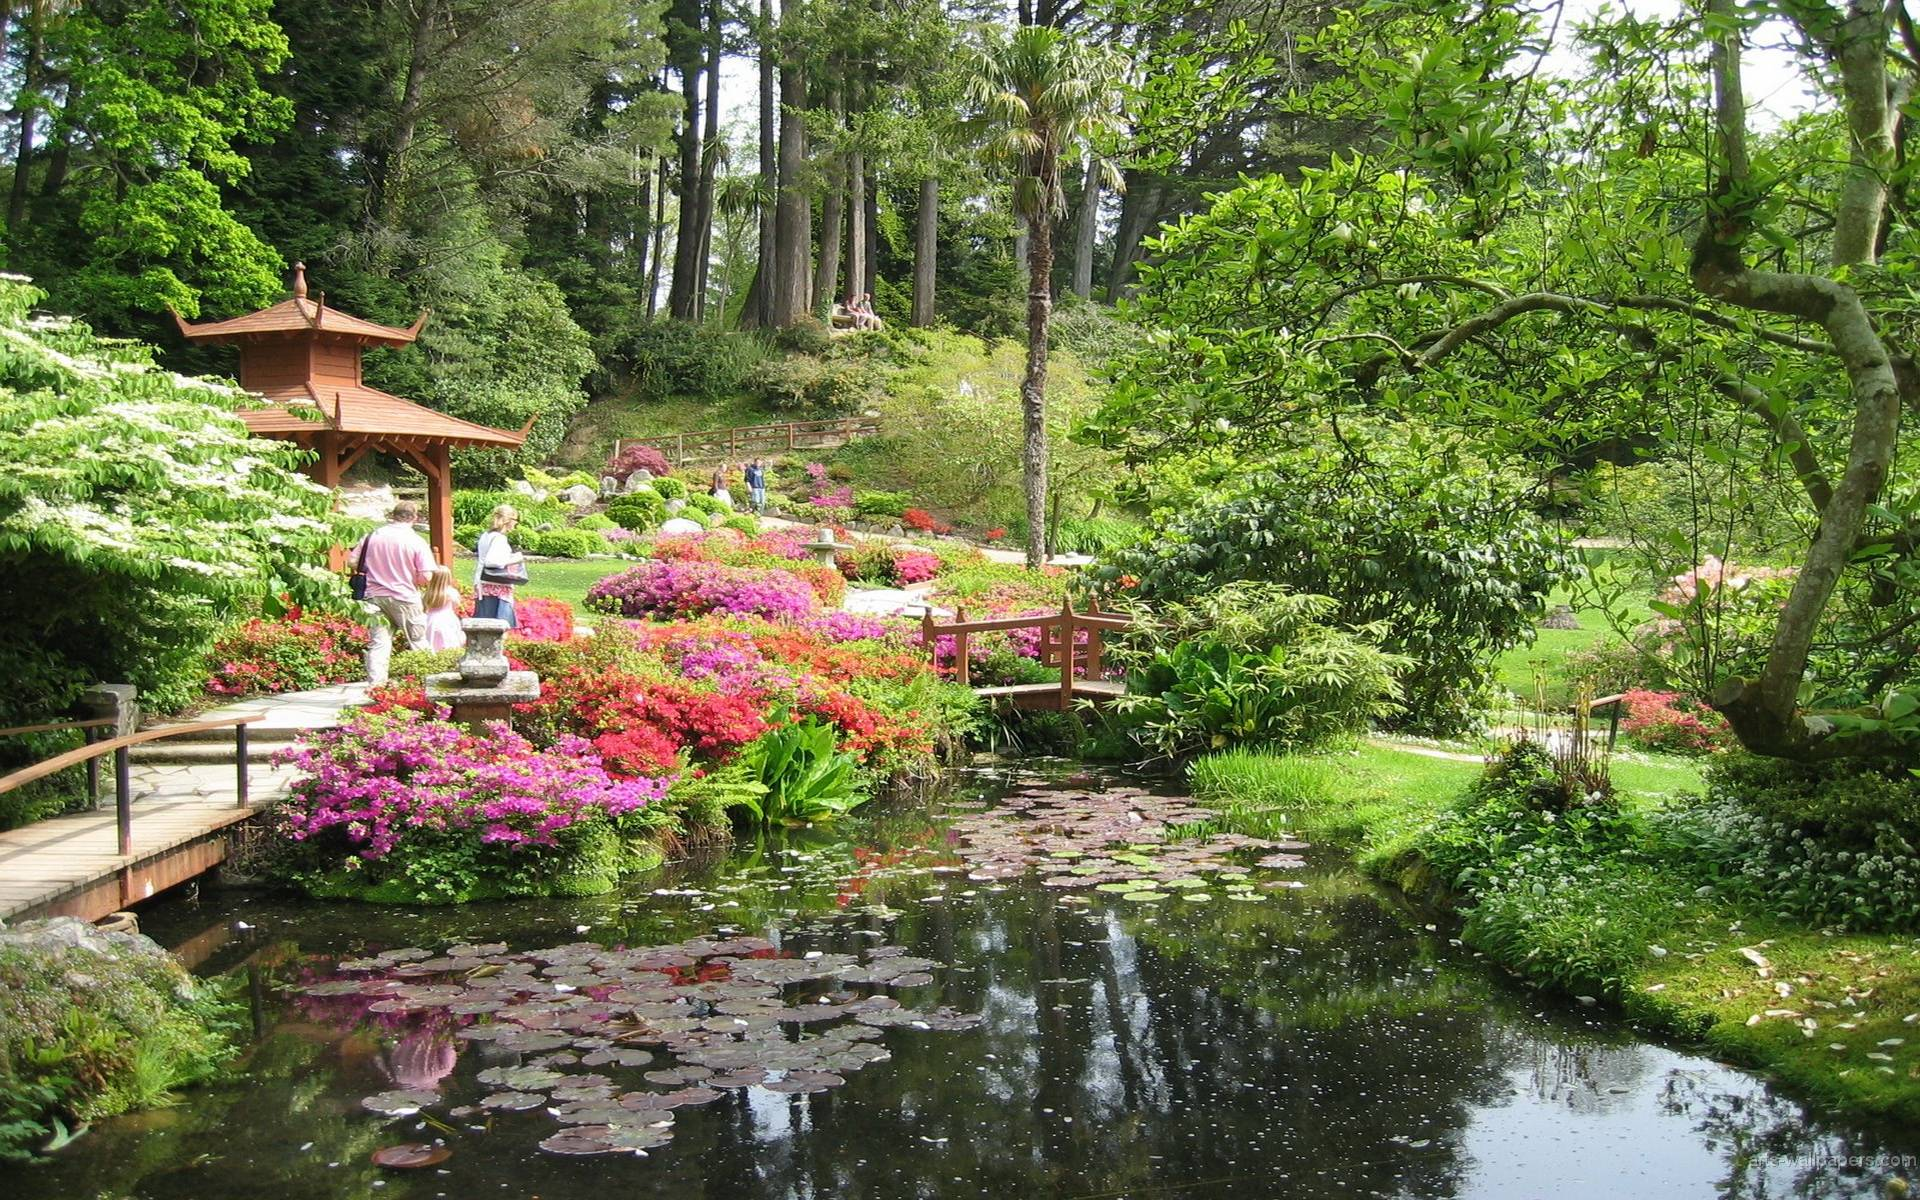 Hd wallpaper garden - Japanese Garden Wallpapers Wallpaper Japanese Garden Wallpapers